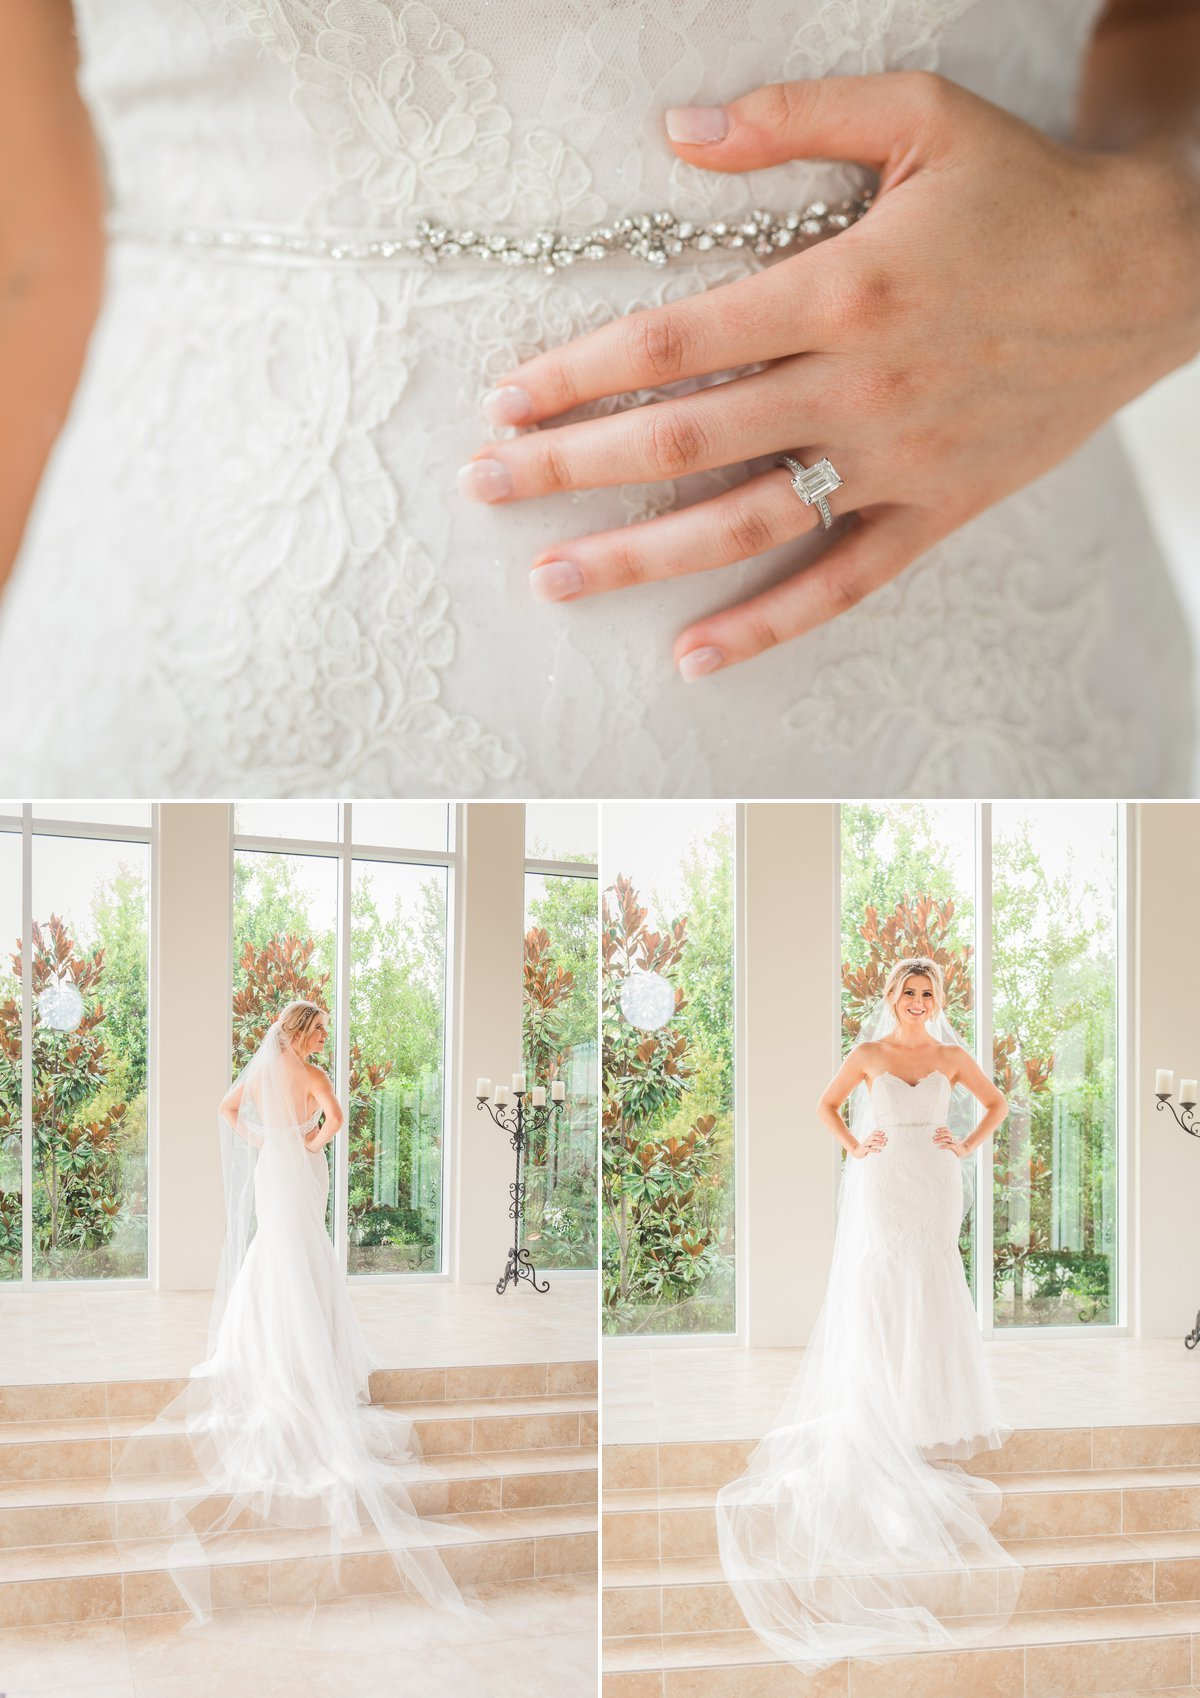 hannahs-bridals-ashton-garden-west-13